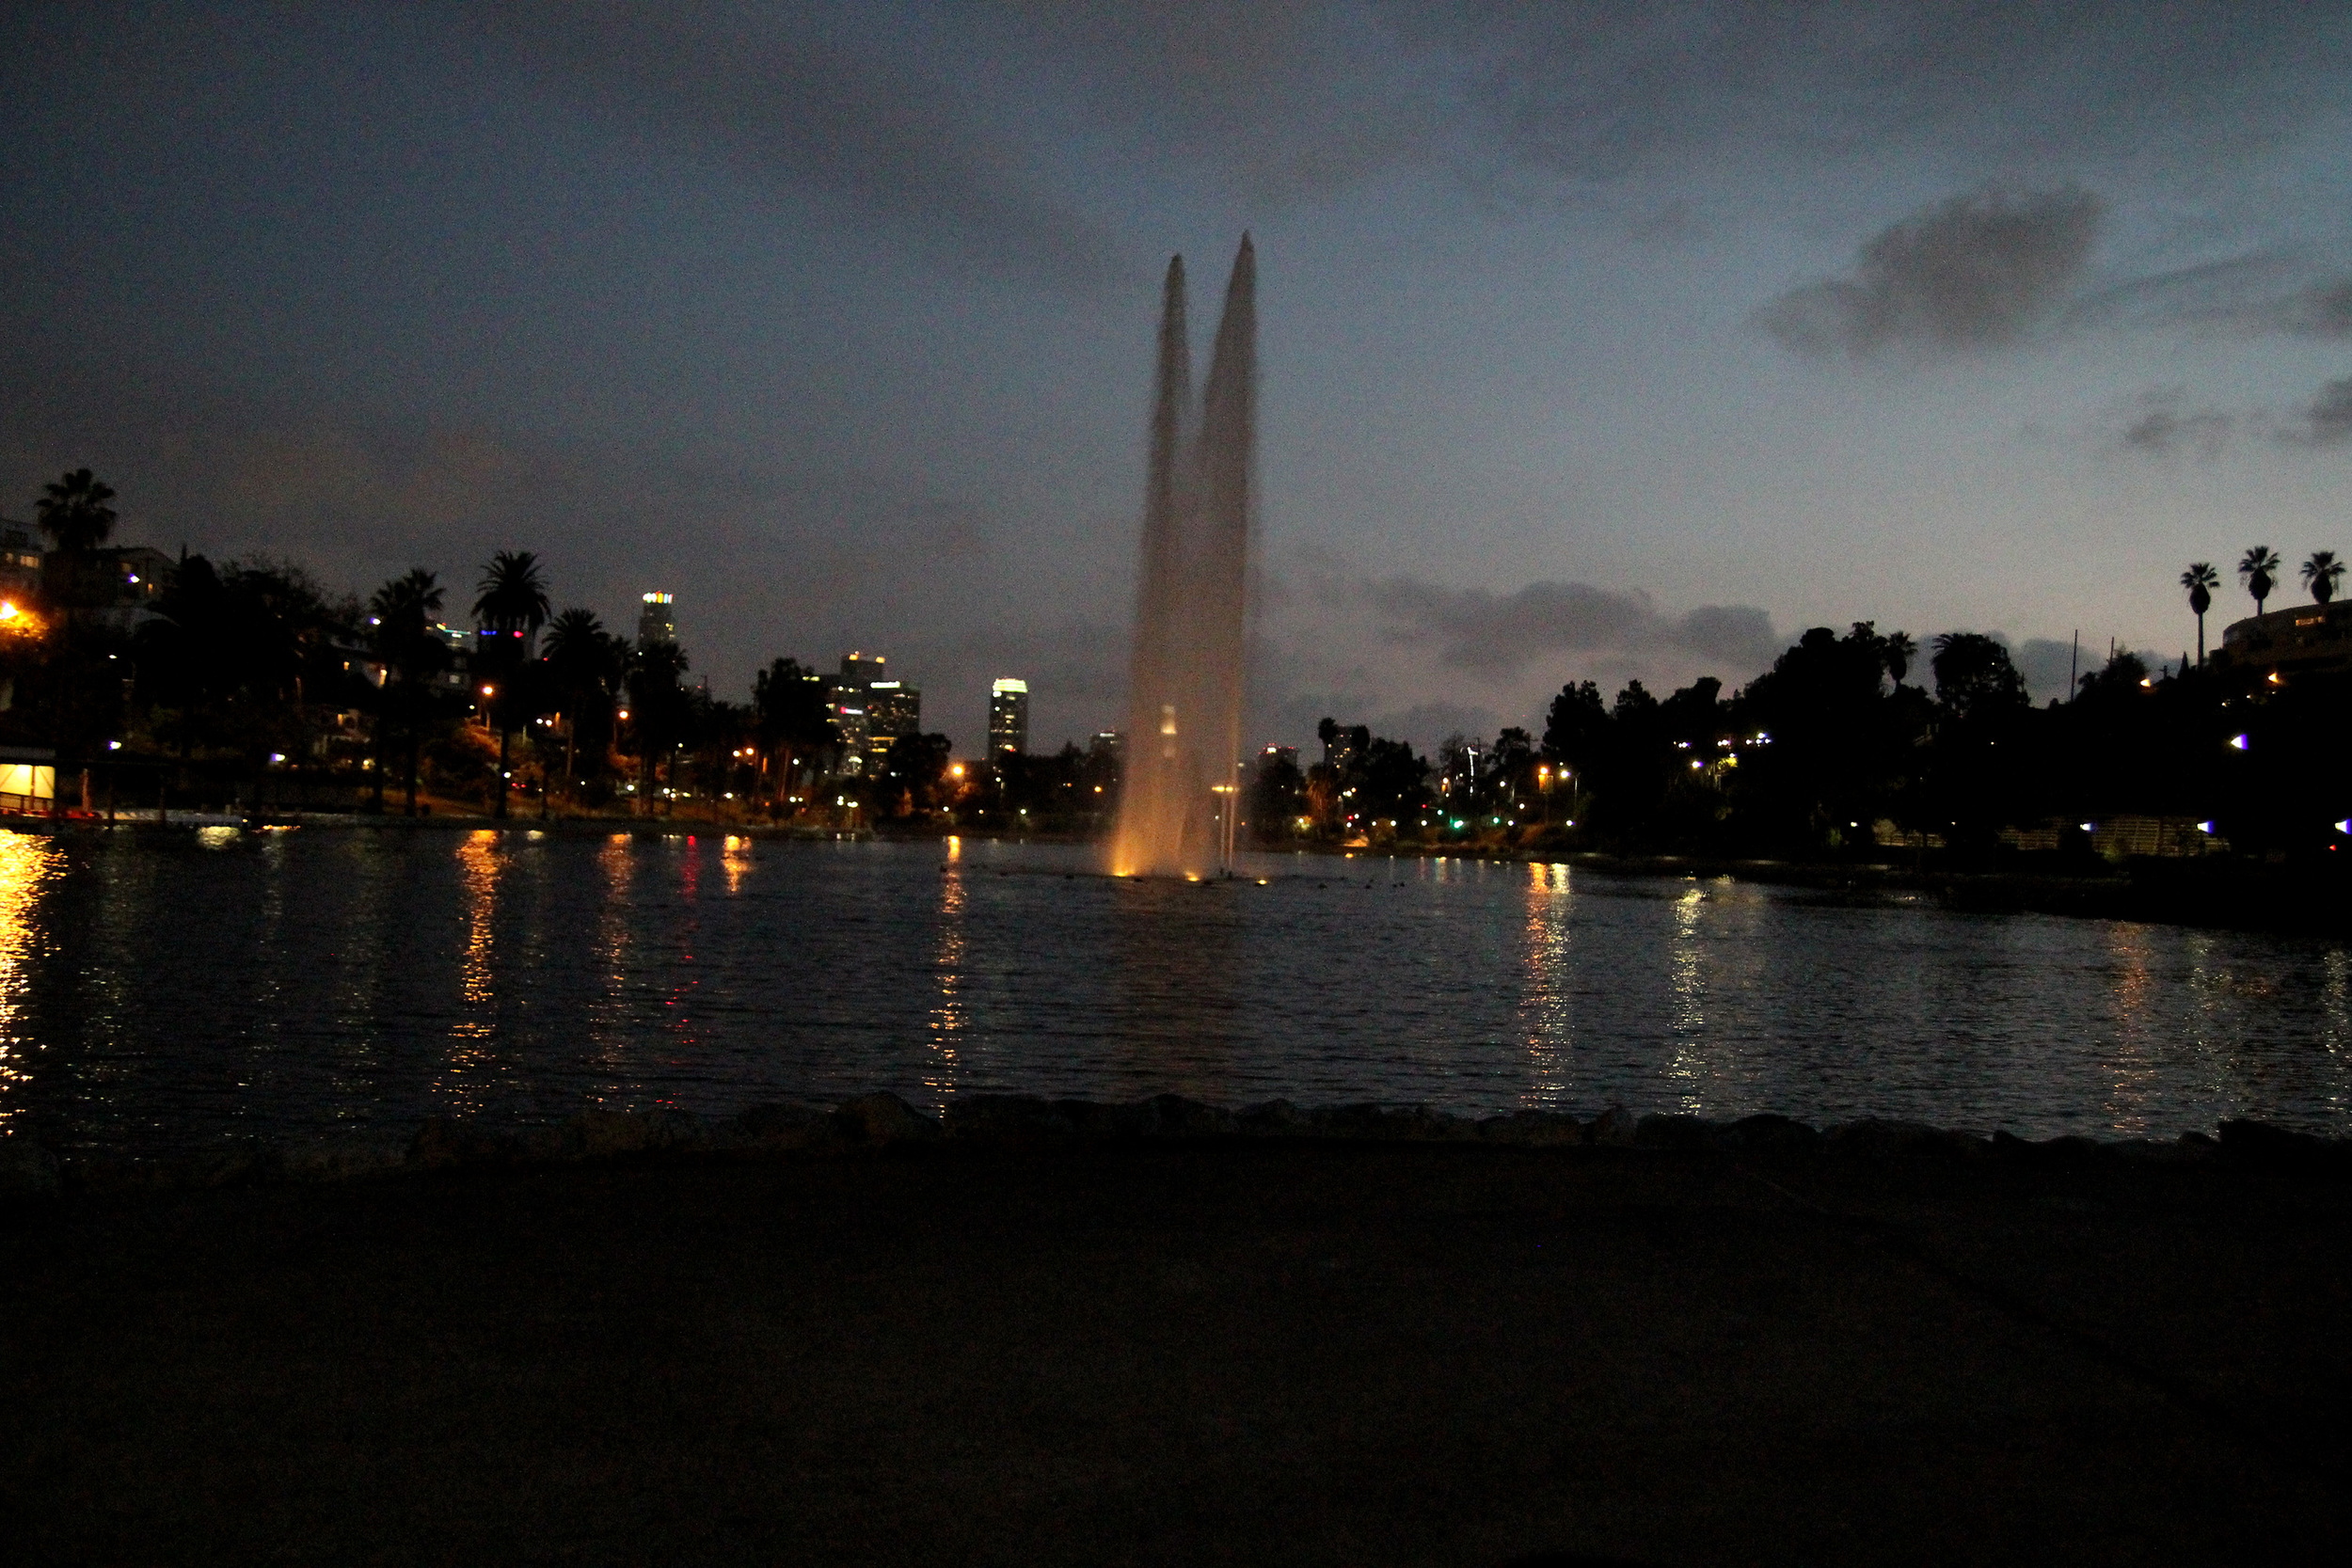 Echo Park: My current home.